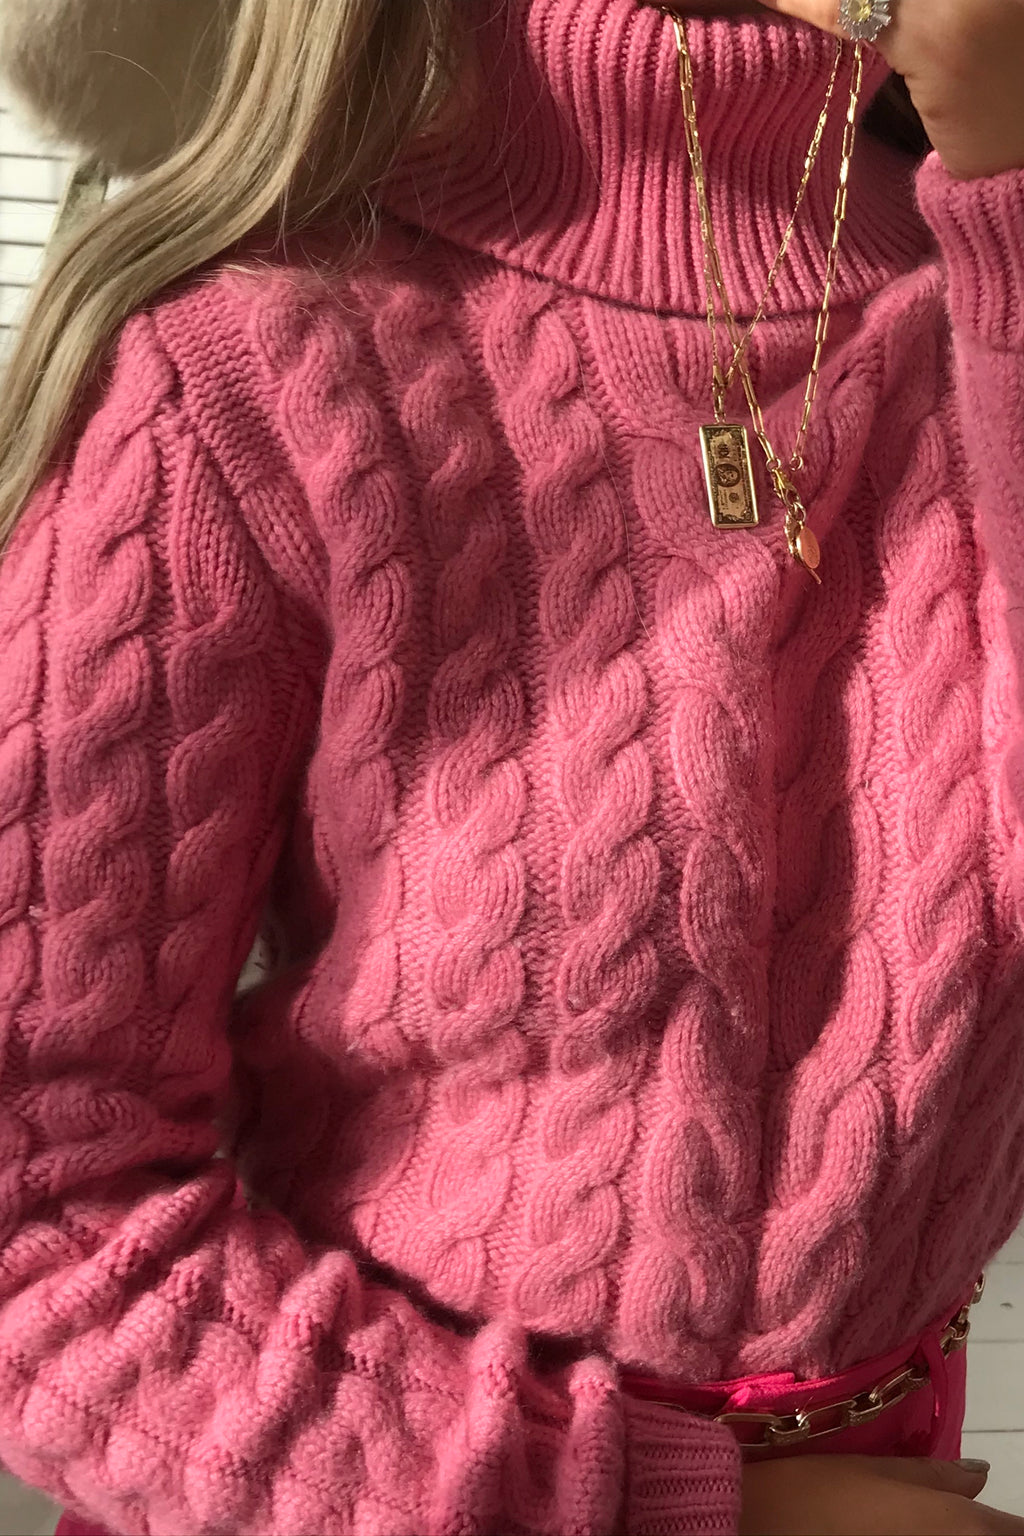 Vintage Y2K Bubblegum Pink Super Soft Cable Knit 100% Cashmere Roll Neck Jumper